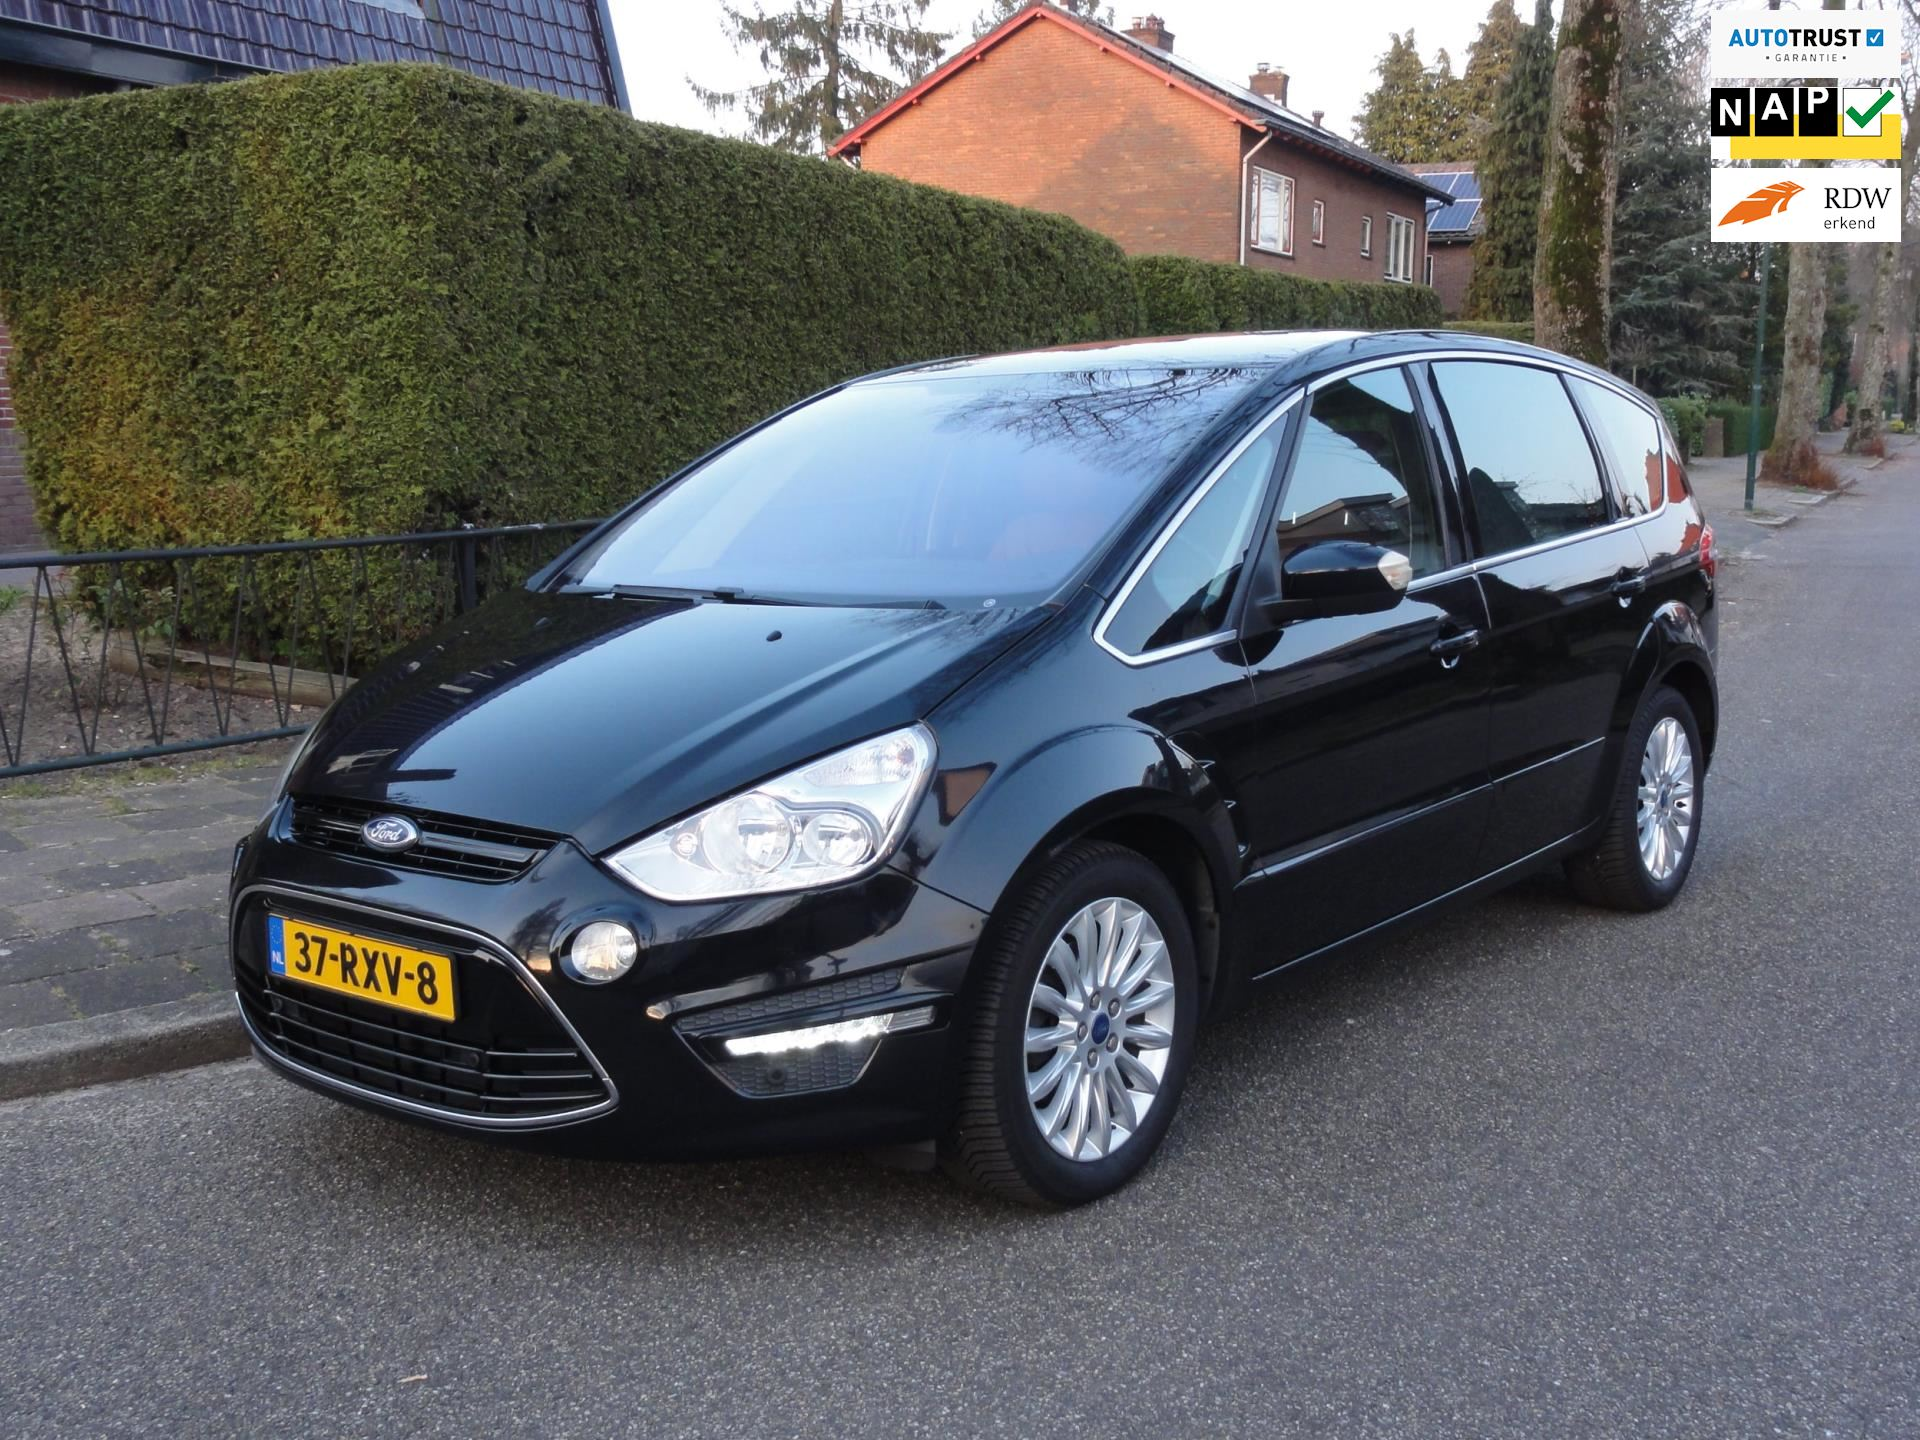 Ford S-Max occasion - Autobedrijf H. Reinders